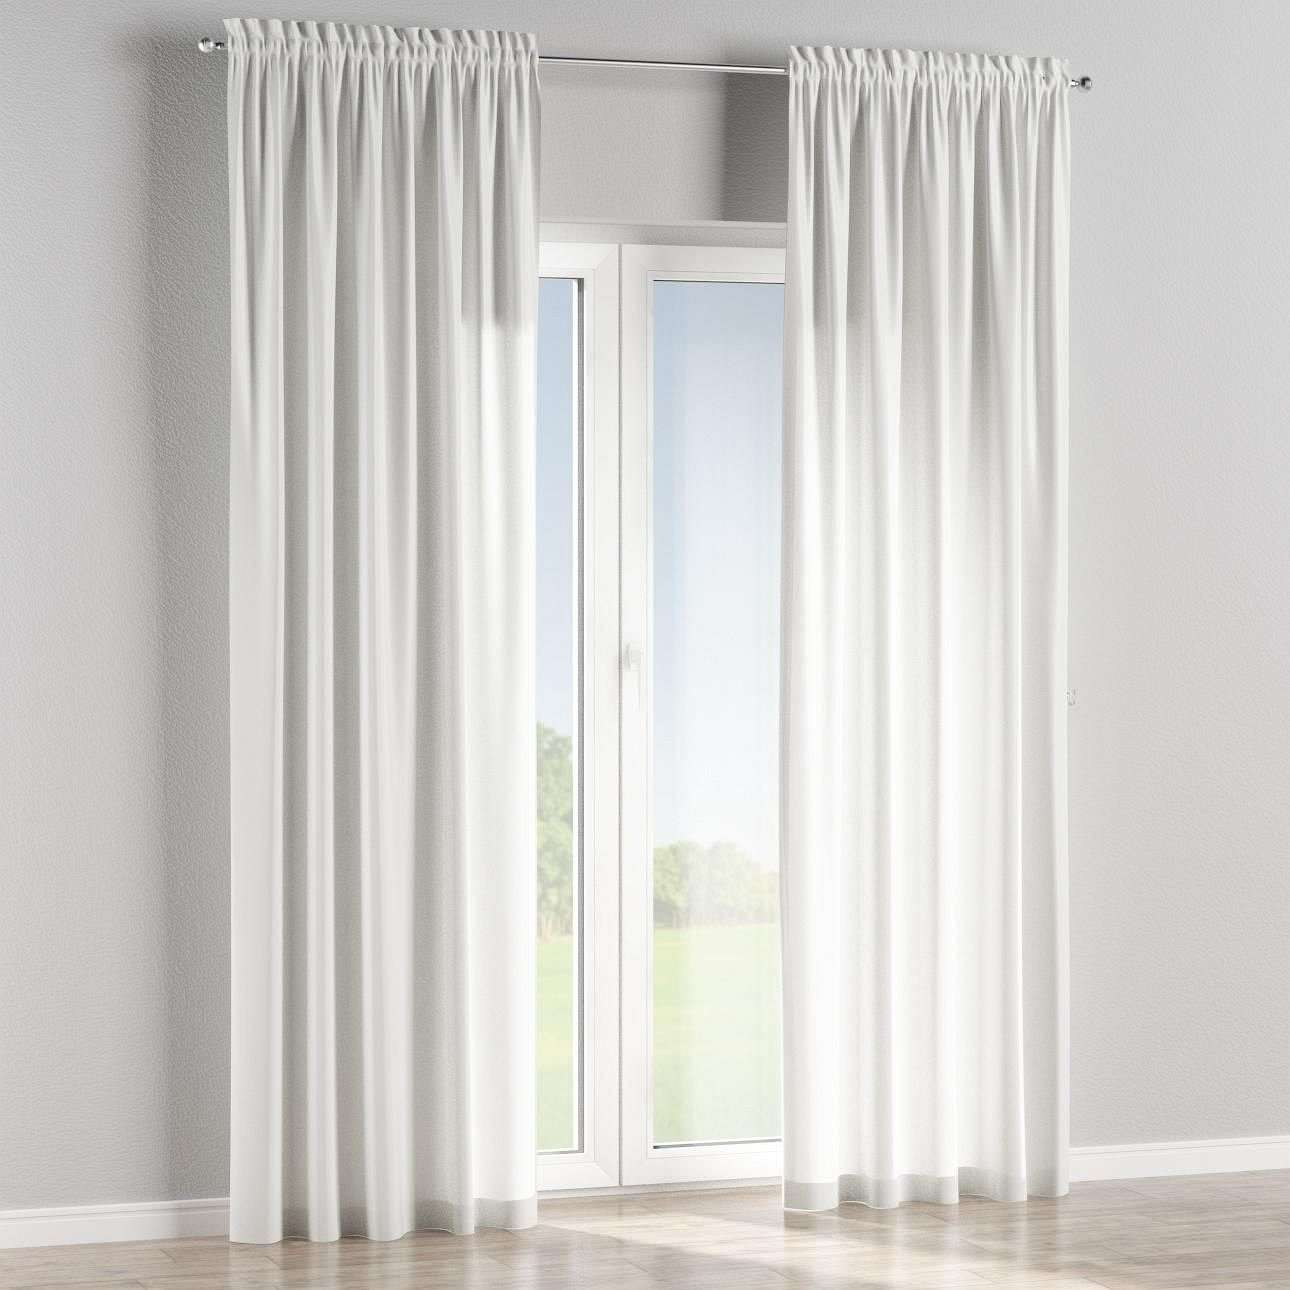 Slot and frill lined curtains in collection Rustica, fabric: 138-12